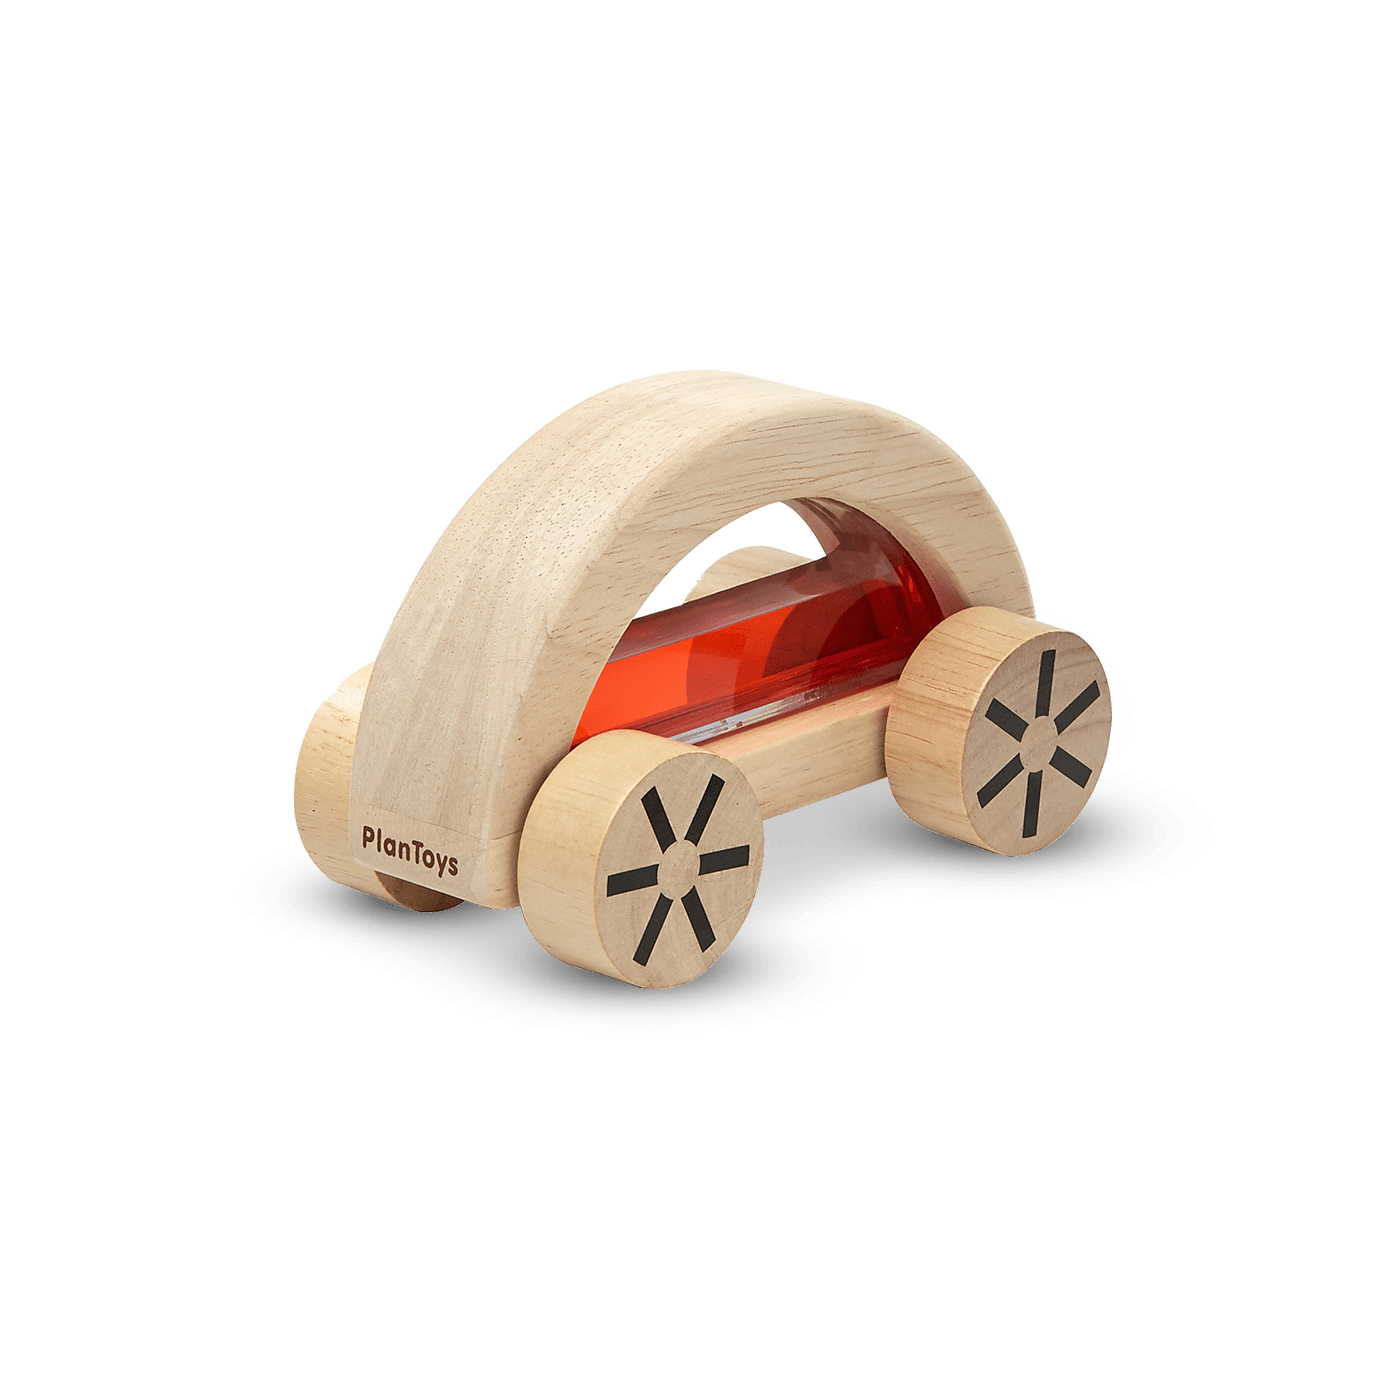 5449_PlanToys_WAUTOMOBILE_(Red)_Learning_and_Education_Fine_Motor_Imagination_Language_and_Communications_Coordination_Visual_18m_Wooden_toys_Education_toys_Safety_Toys_Non-toxic_0.png